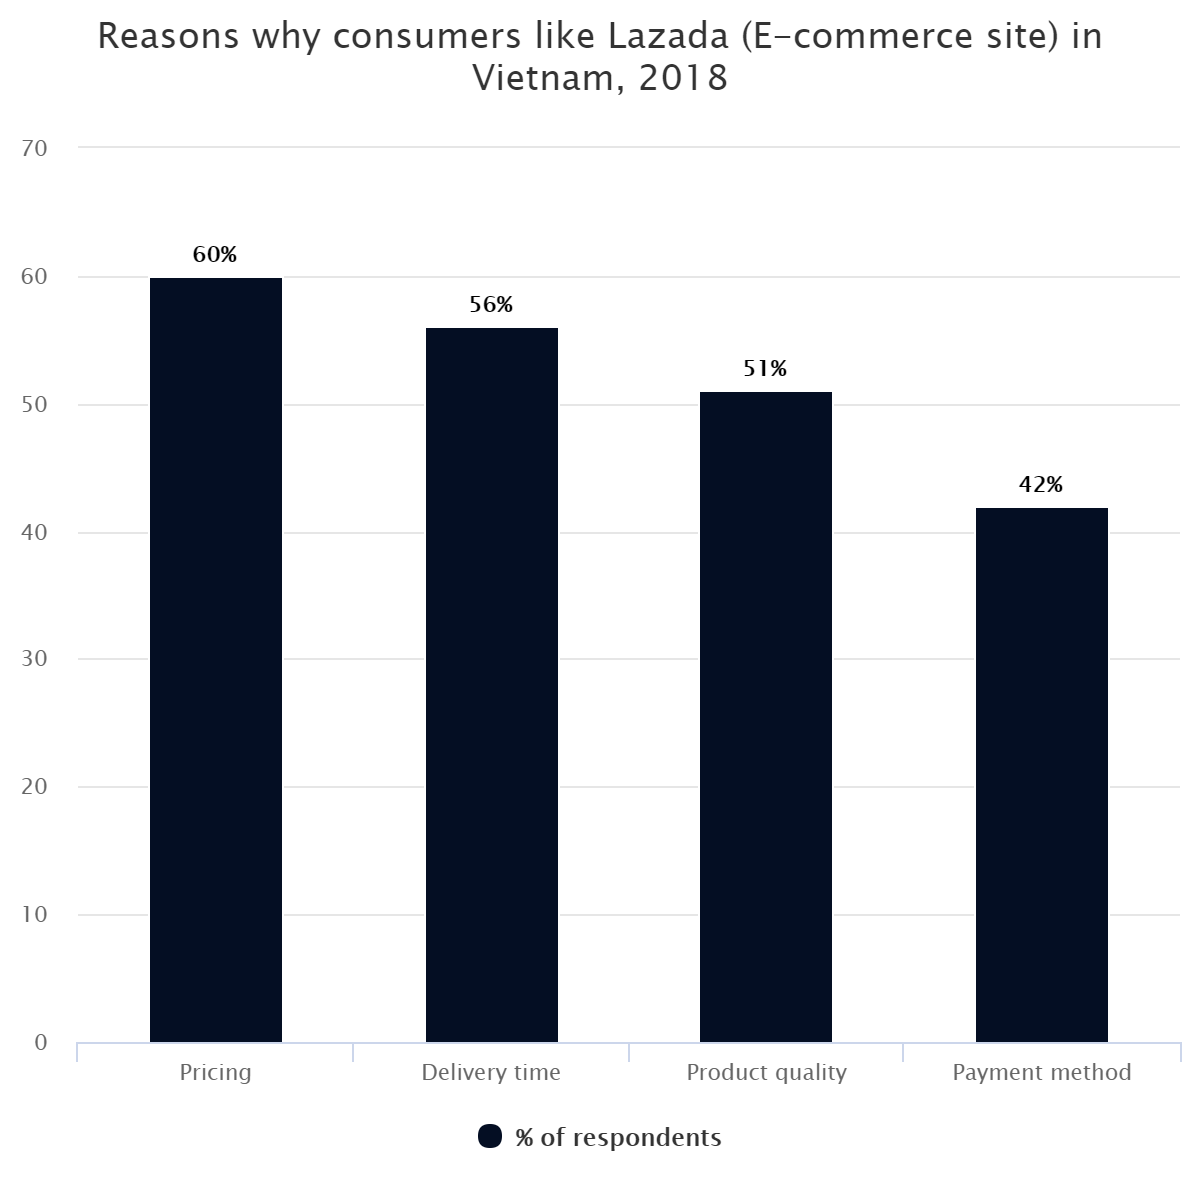 Reasons why consumers like Lazada (E-commerce site) in Vietnam, 2018